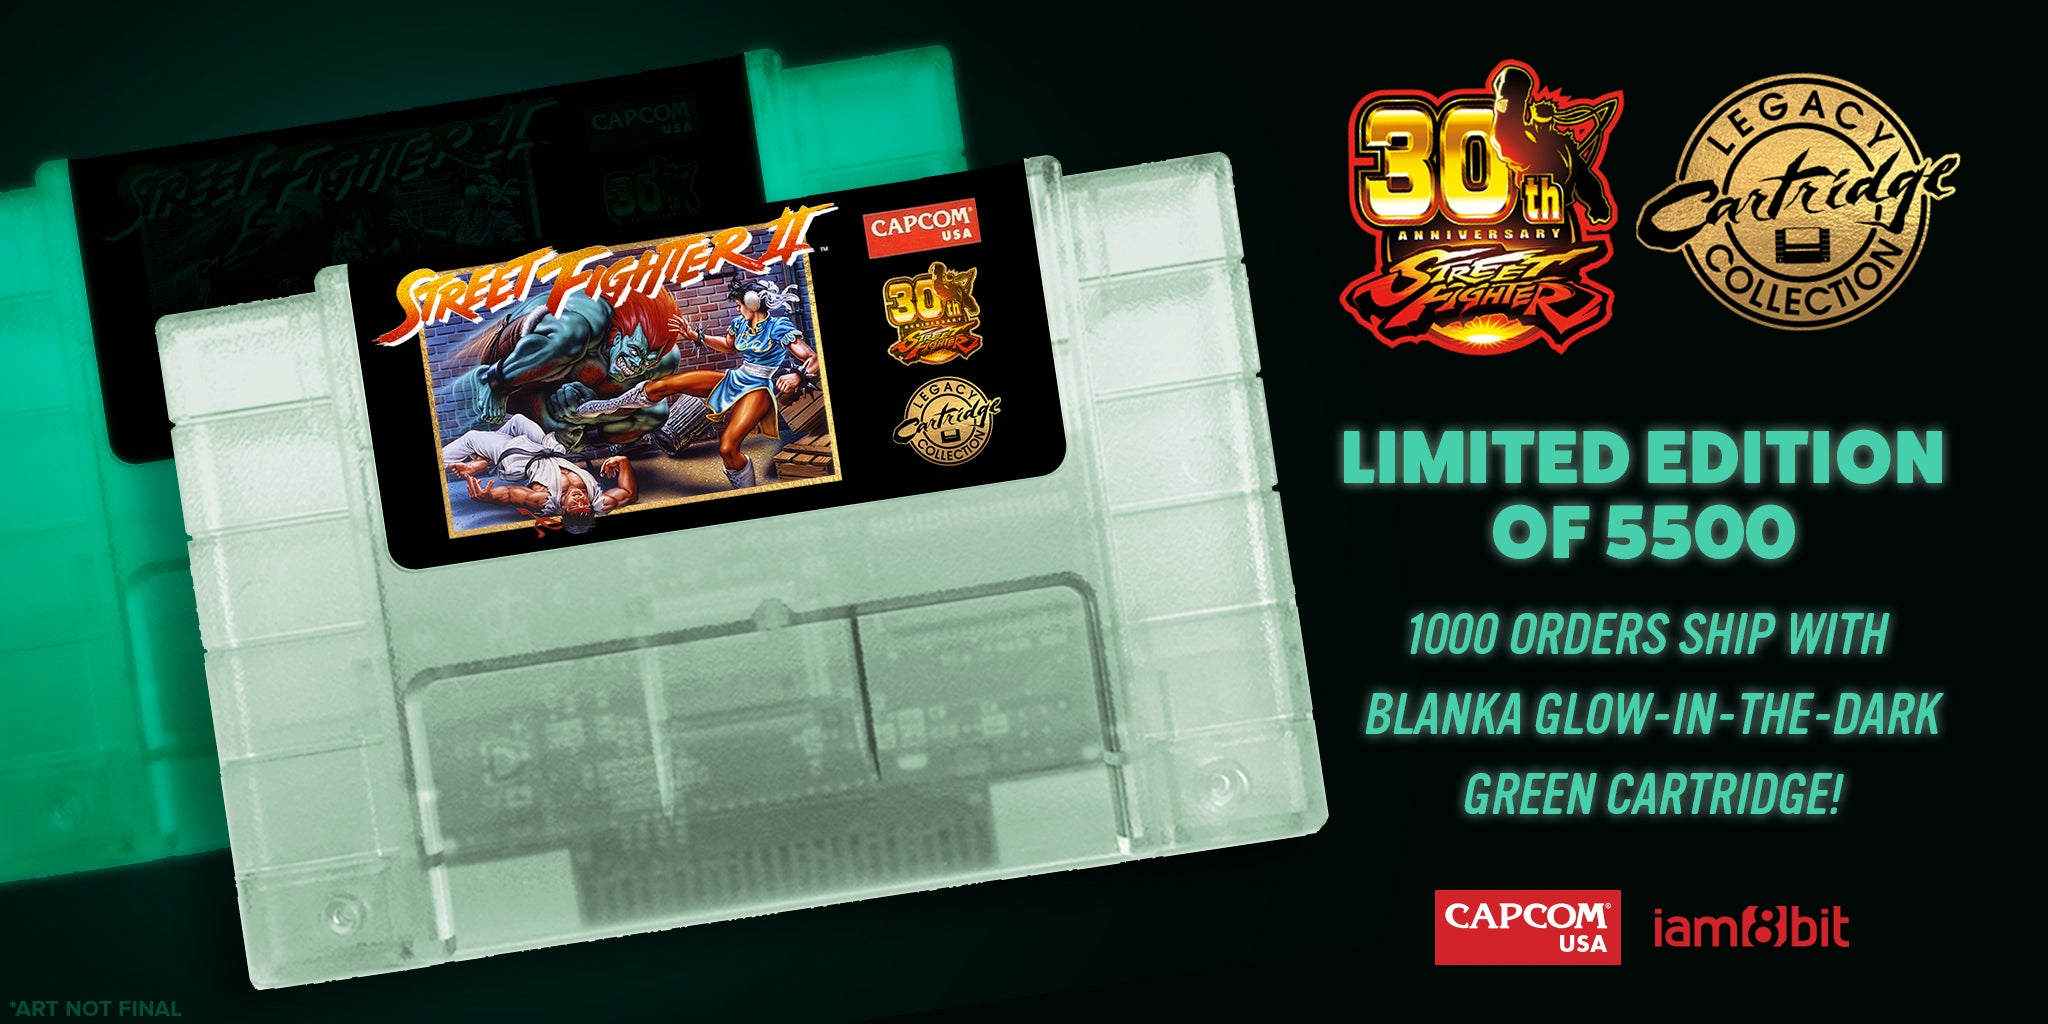 Capcom is re-releasing Street Fighter II for the SNES